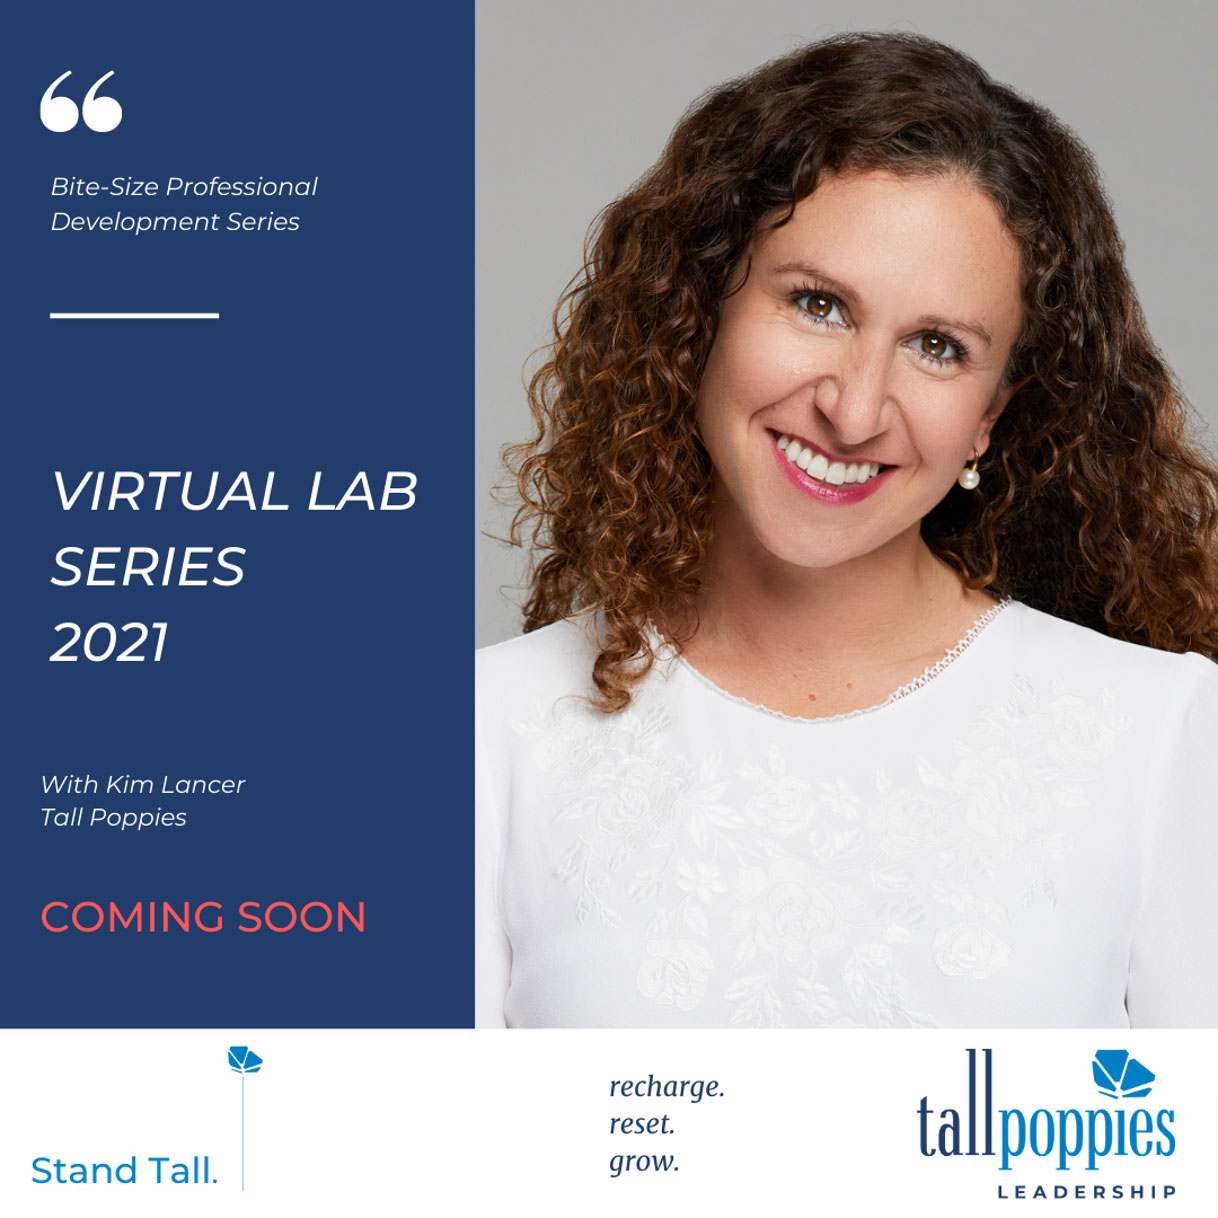 Virtual Lab Series 2021